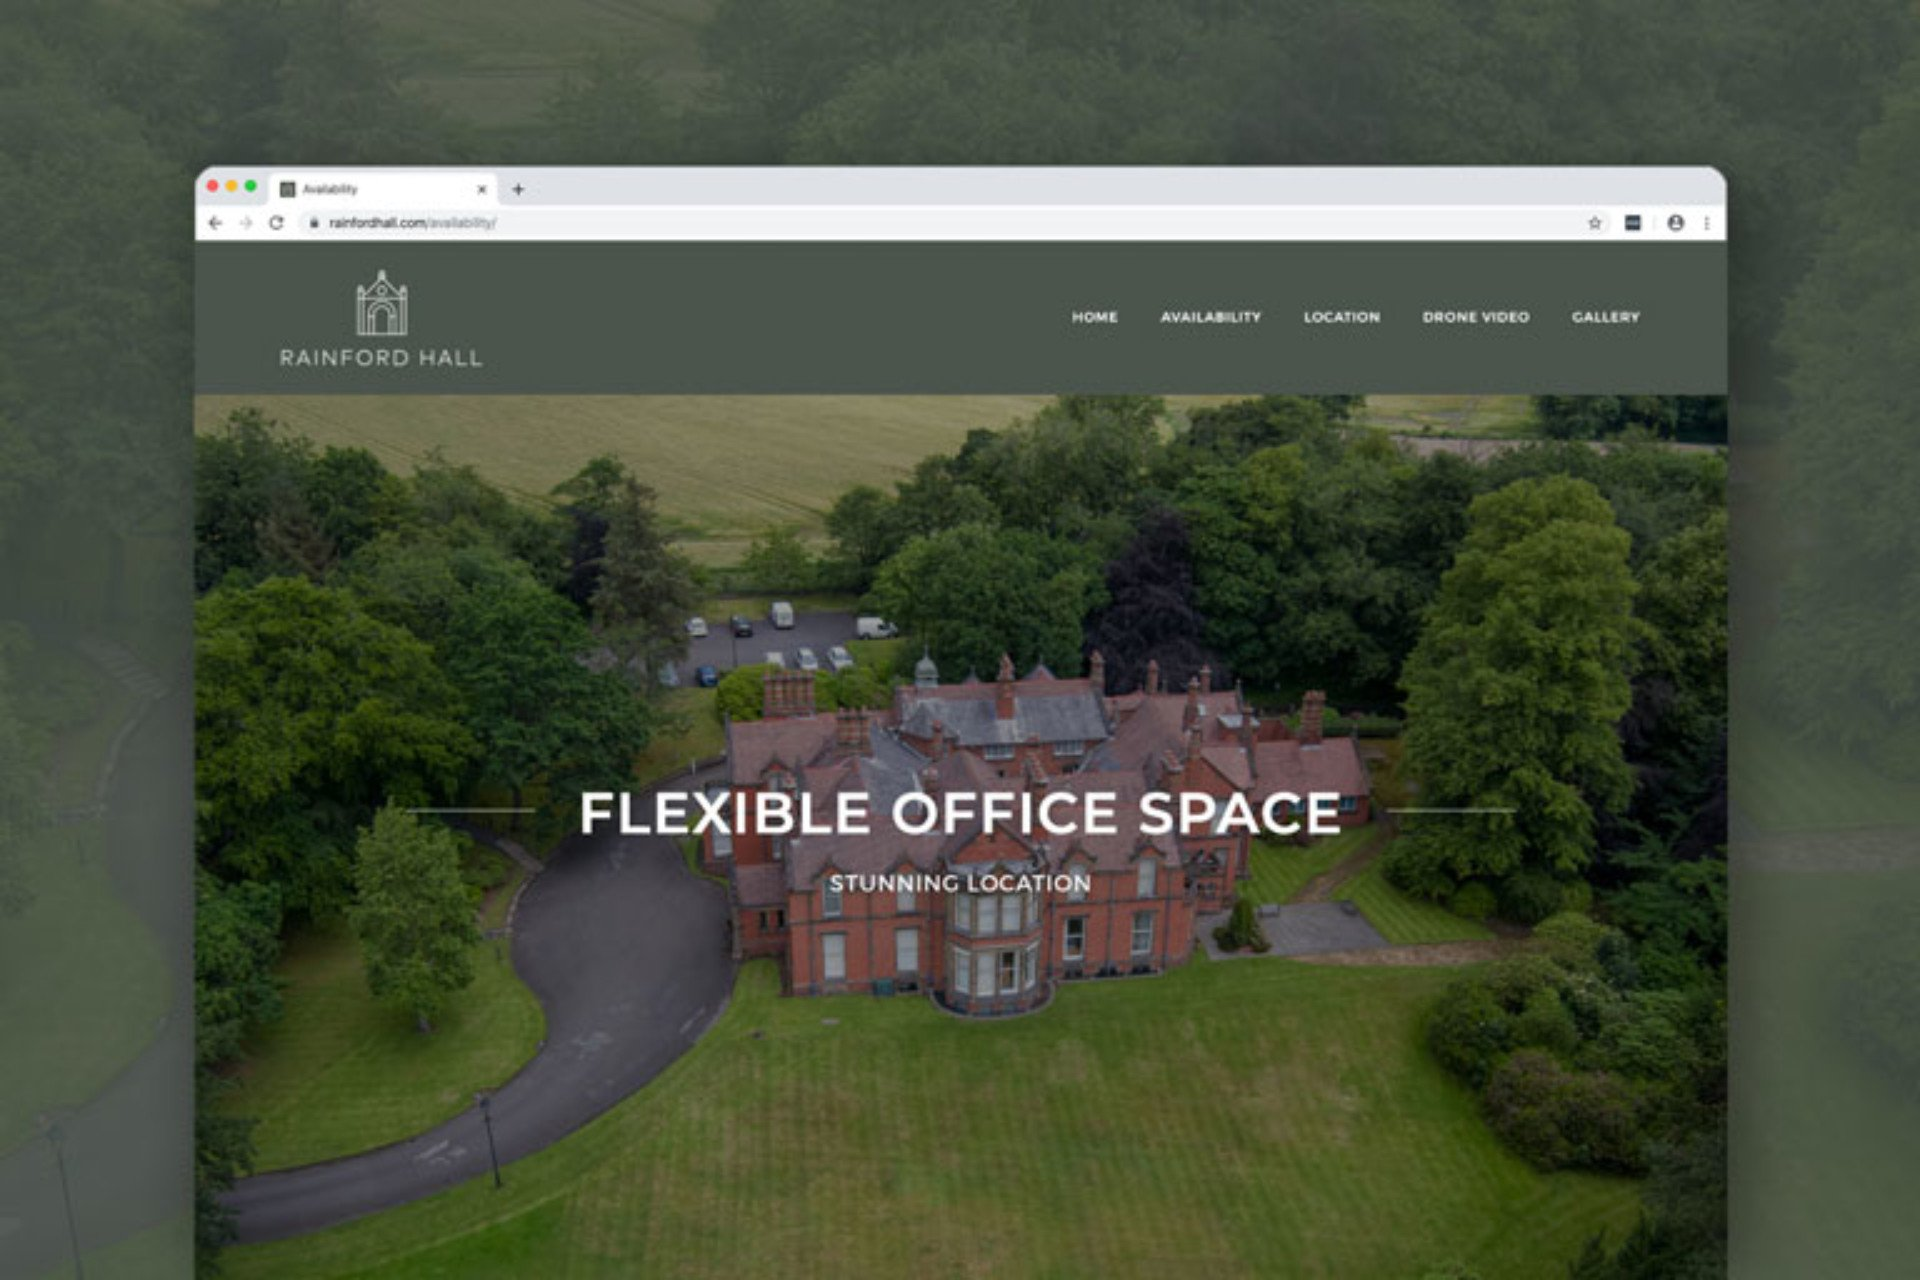 Rainford Hall Office Space Promotional Website